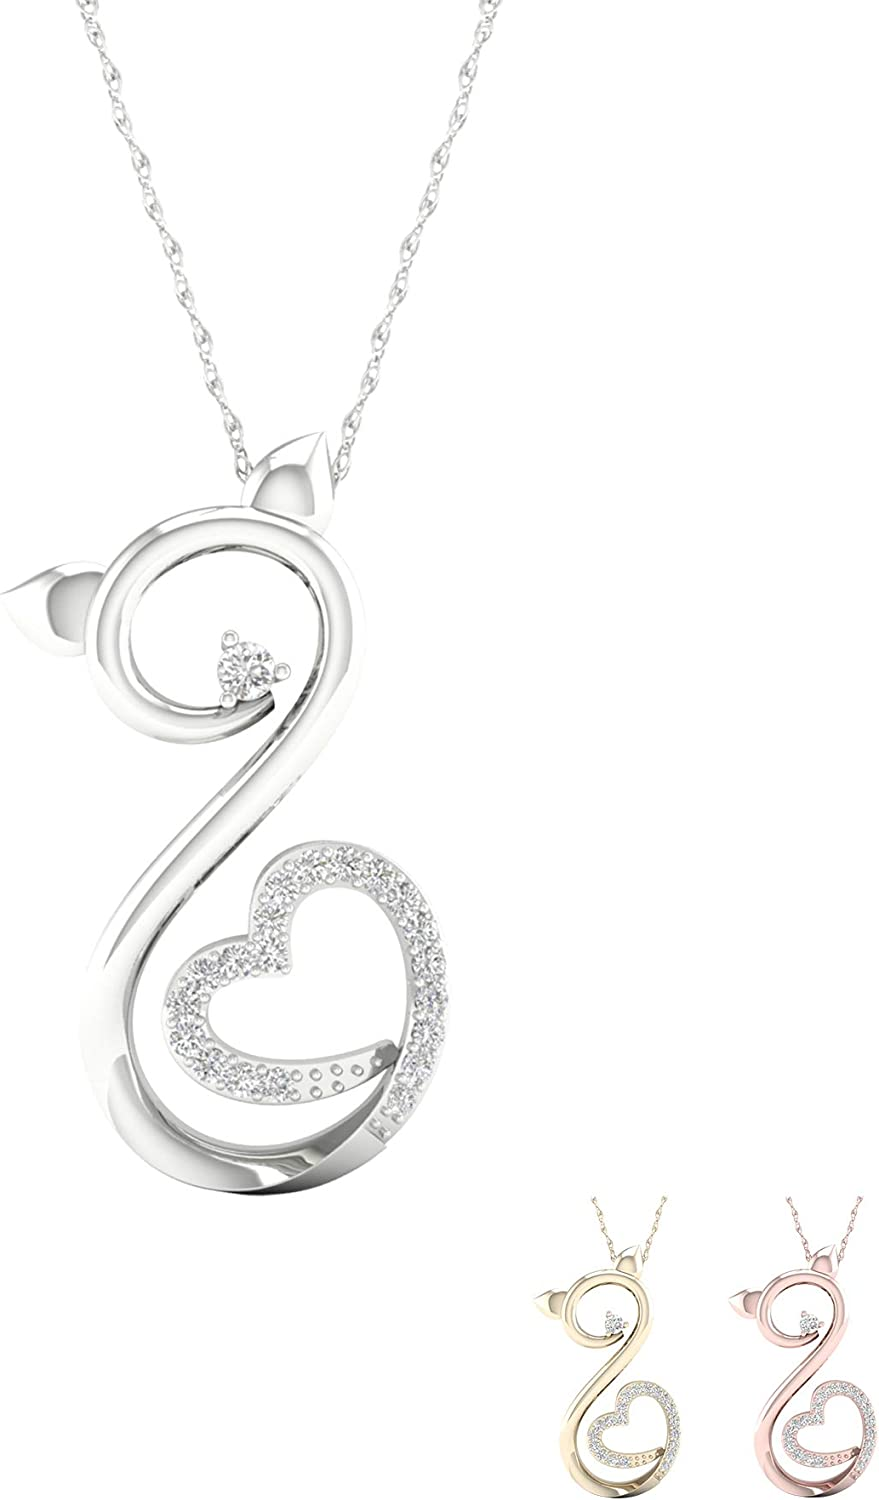 Birthstone Pendant IGI Certified 14k Rose Gold Diamond Pendant Easter/'s Day With Silver Chain Heart Shape Pendant Statement Jewelry